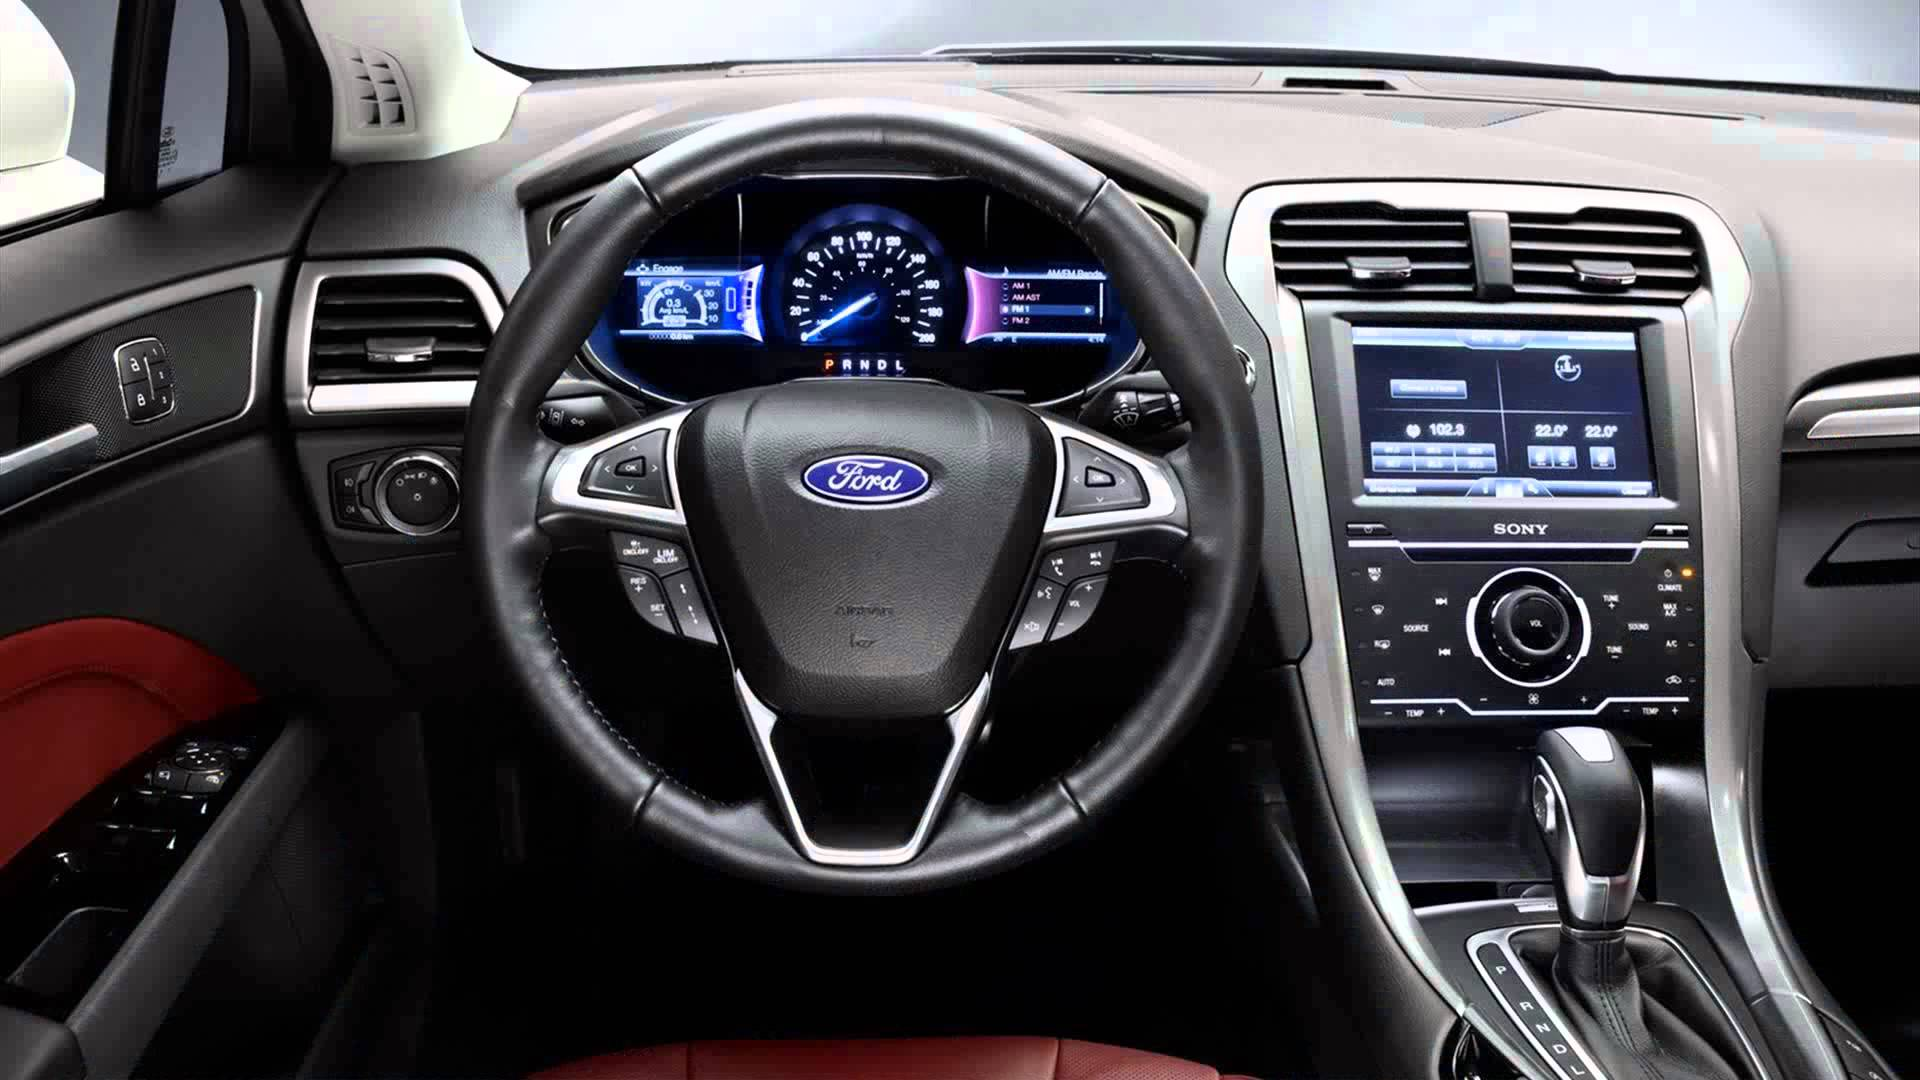 marvelous-design-of-the-black-and-silver-accent-steering-wheels-as-the-ford-mondeo-2015-interior-ideas